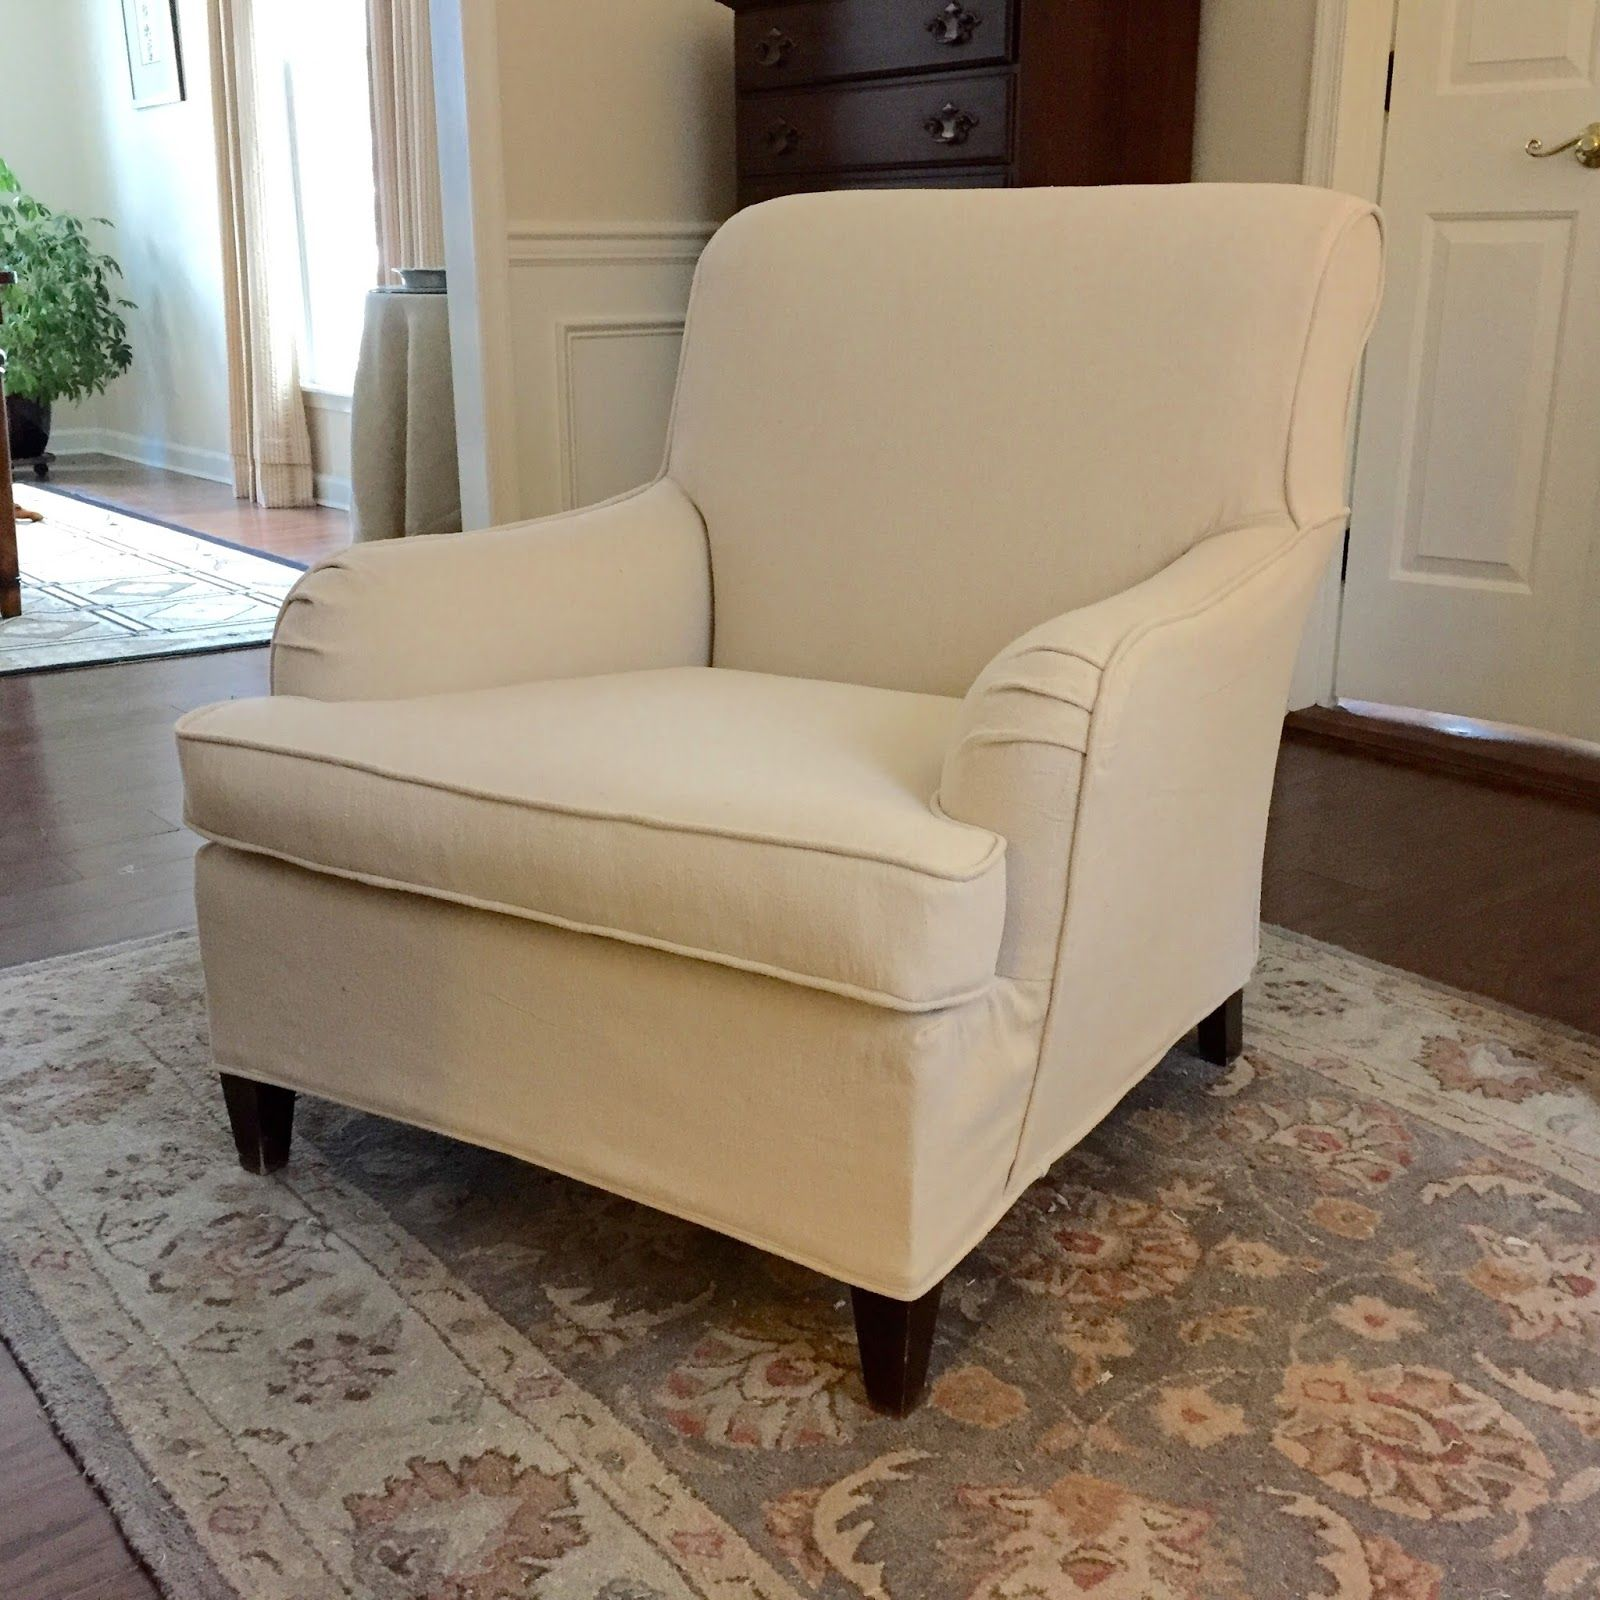 slipcovers for club chairs desk chair racing seat drop cloth slipcover on a vintage